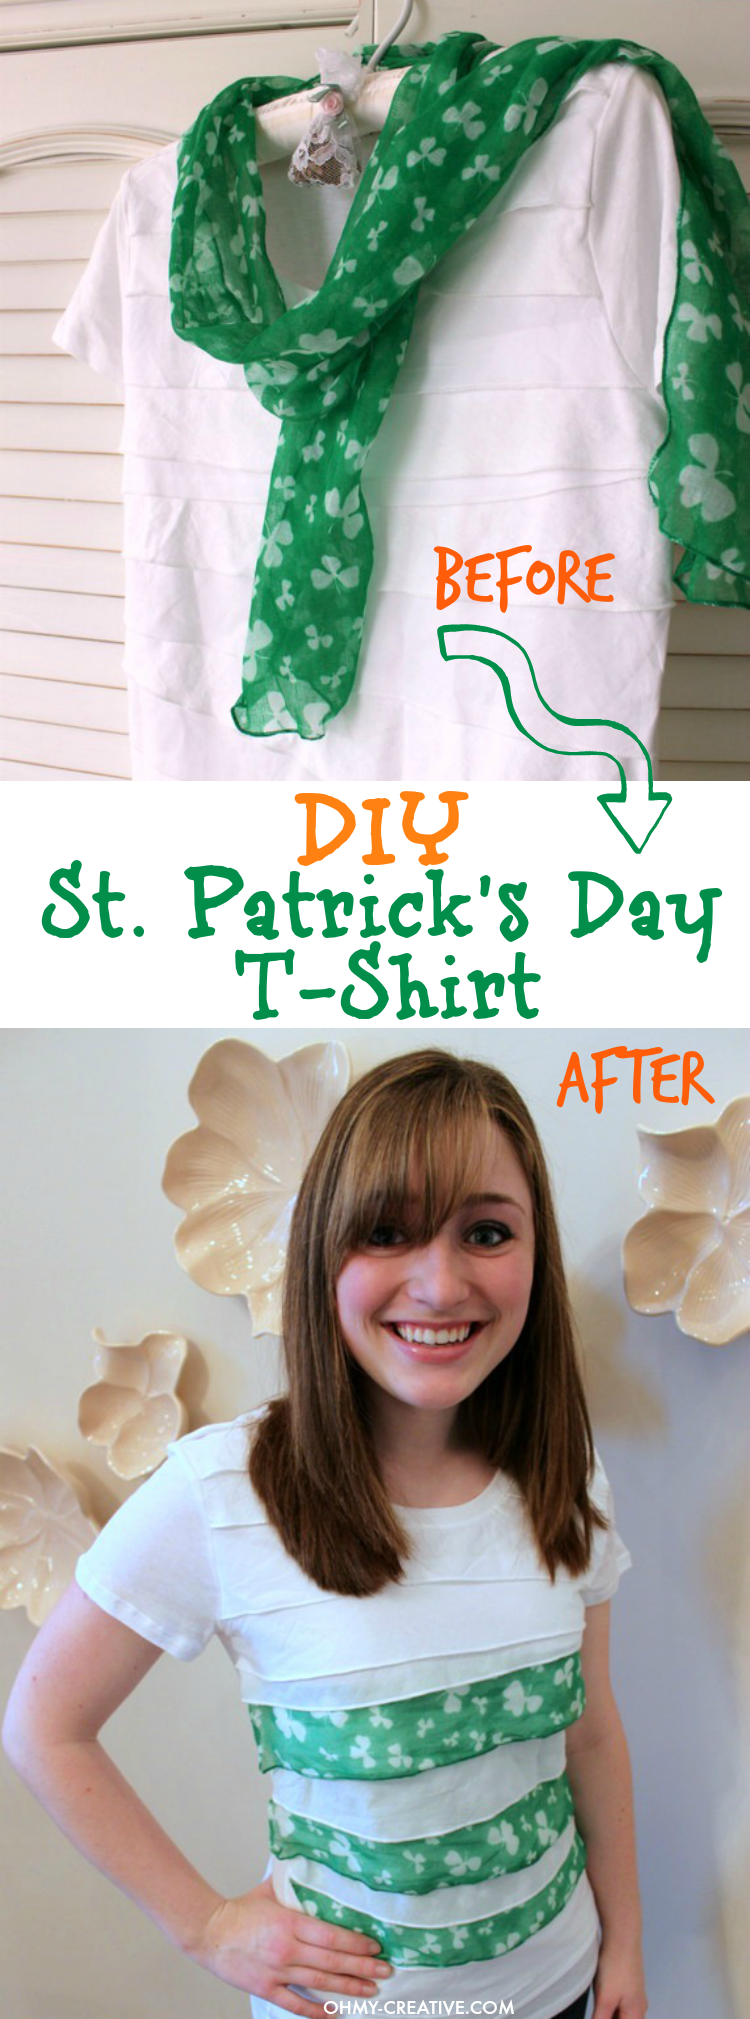 DIY ST. PATRICK'S DAY T-SHIRT - Oh My Creative